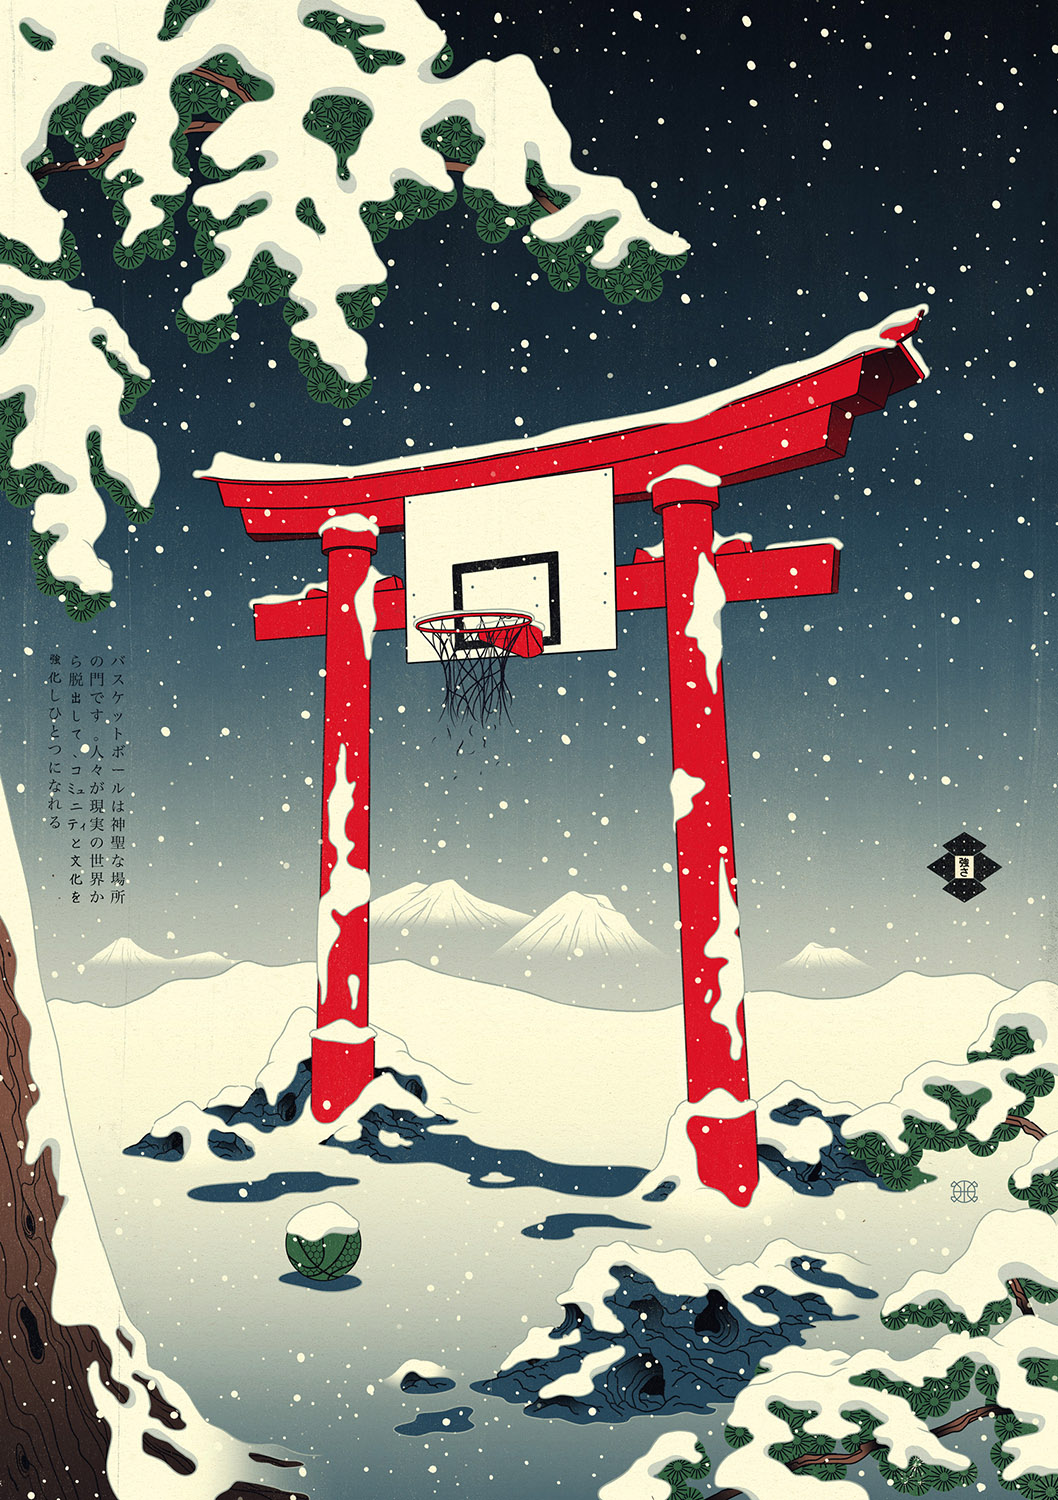 Edo Ball NBA Basketball Art - The Torii Gateway